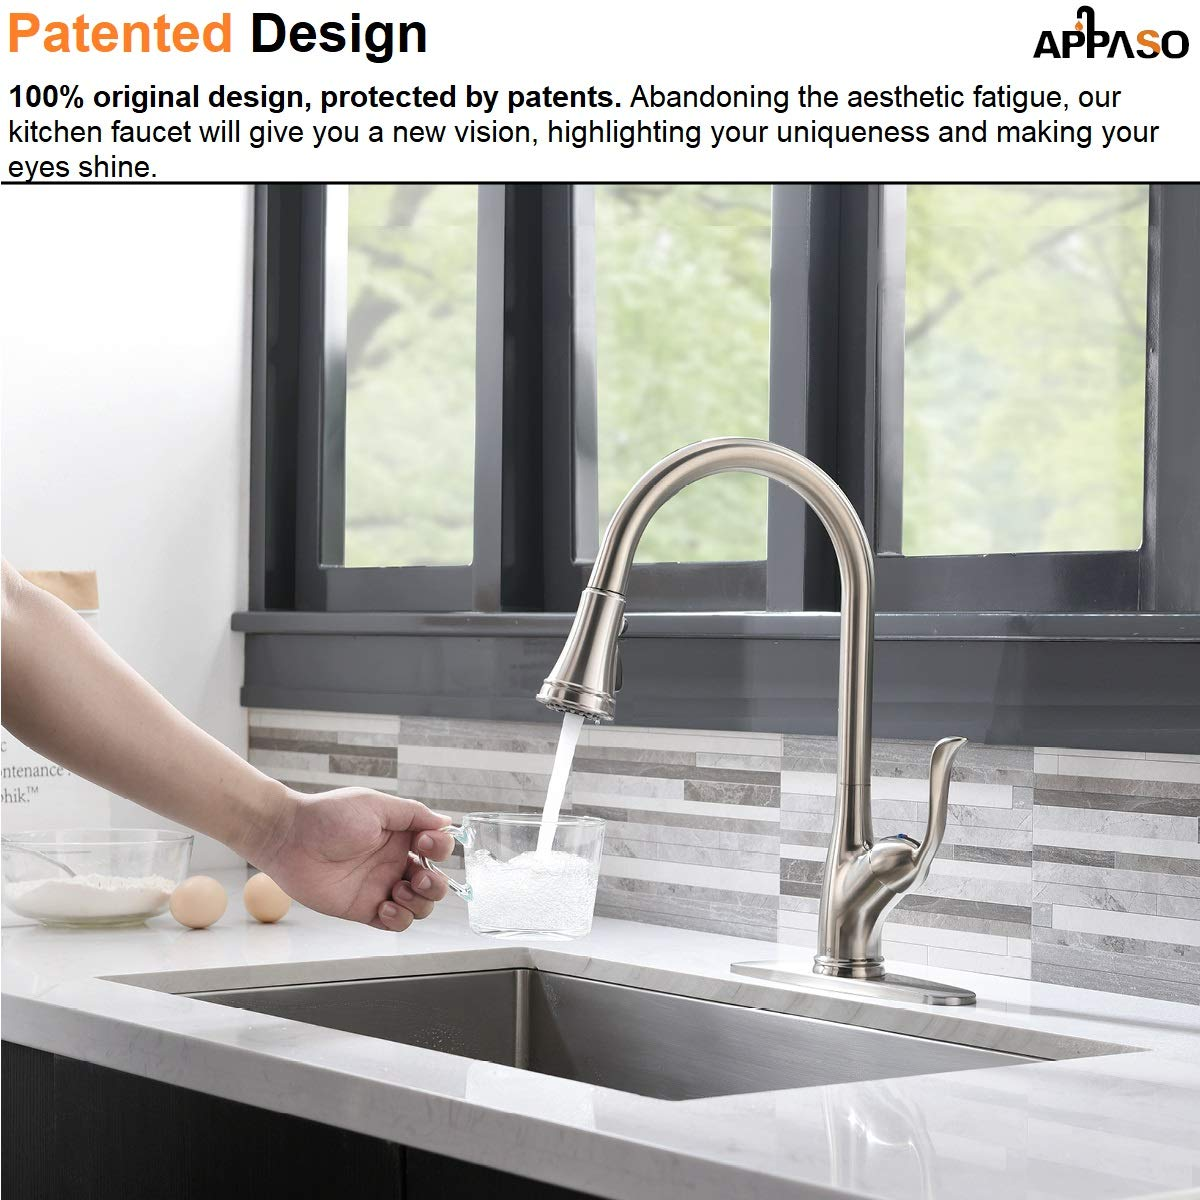 APPASO Single Handle Pull Down Kitchen Faucet with Sprayer, Stainless Steel Brushed Nickel High Arc Single Hole Pull Out Spray Head Kitchen Sink Faucet with Escutcheon by APPASO (Image #2)